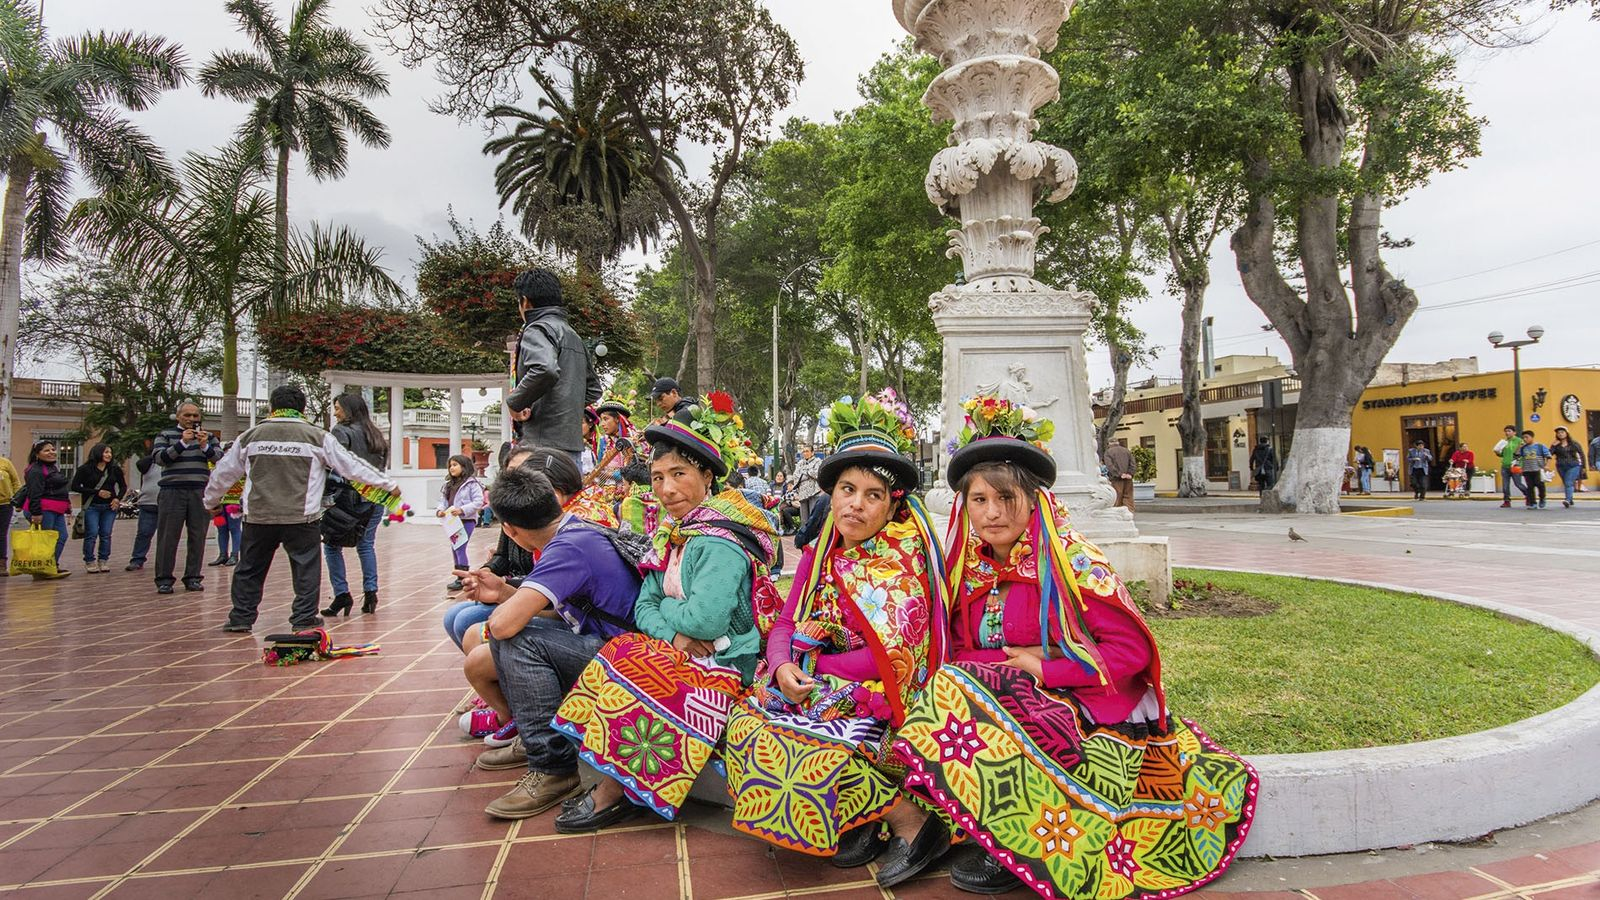 Peruvian women in Barranco dressed in the traditional clothing of Cusco and the mountains